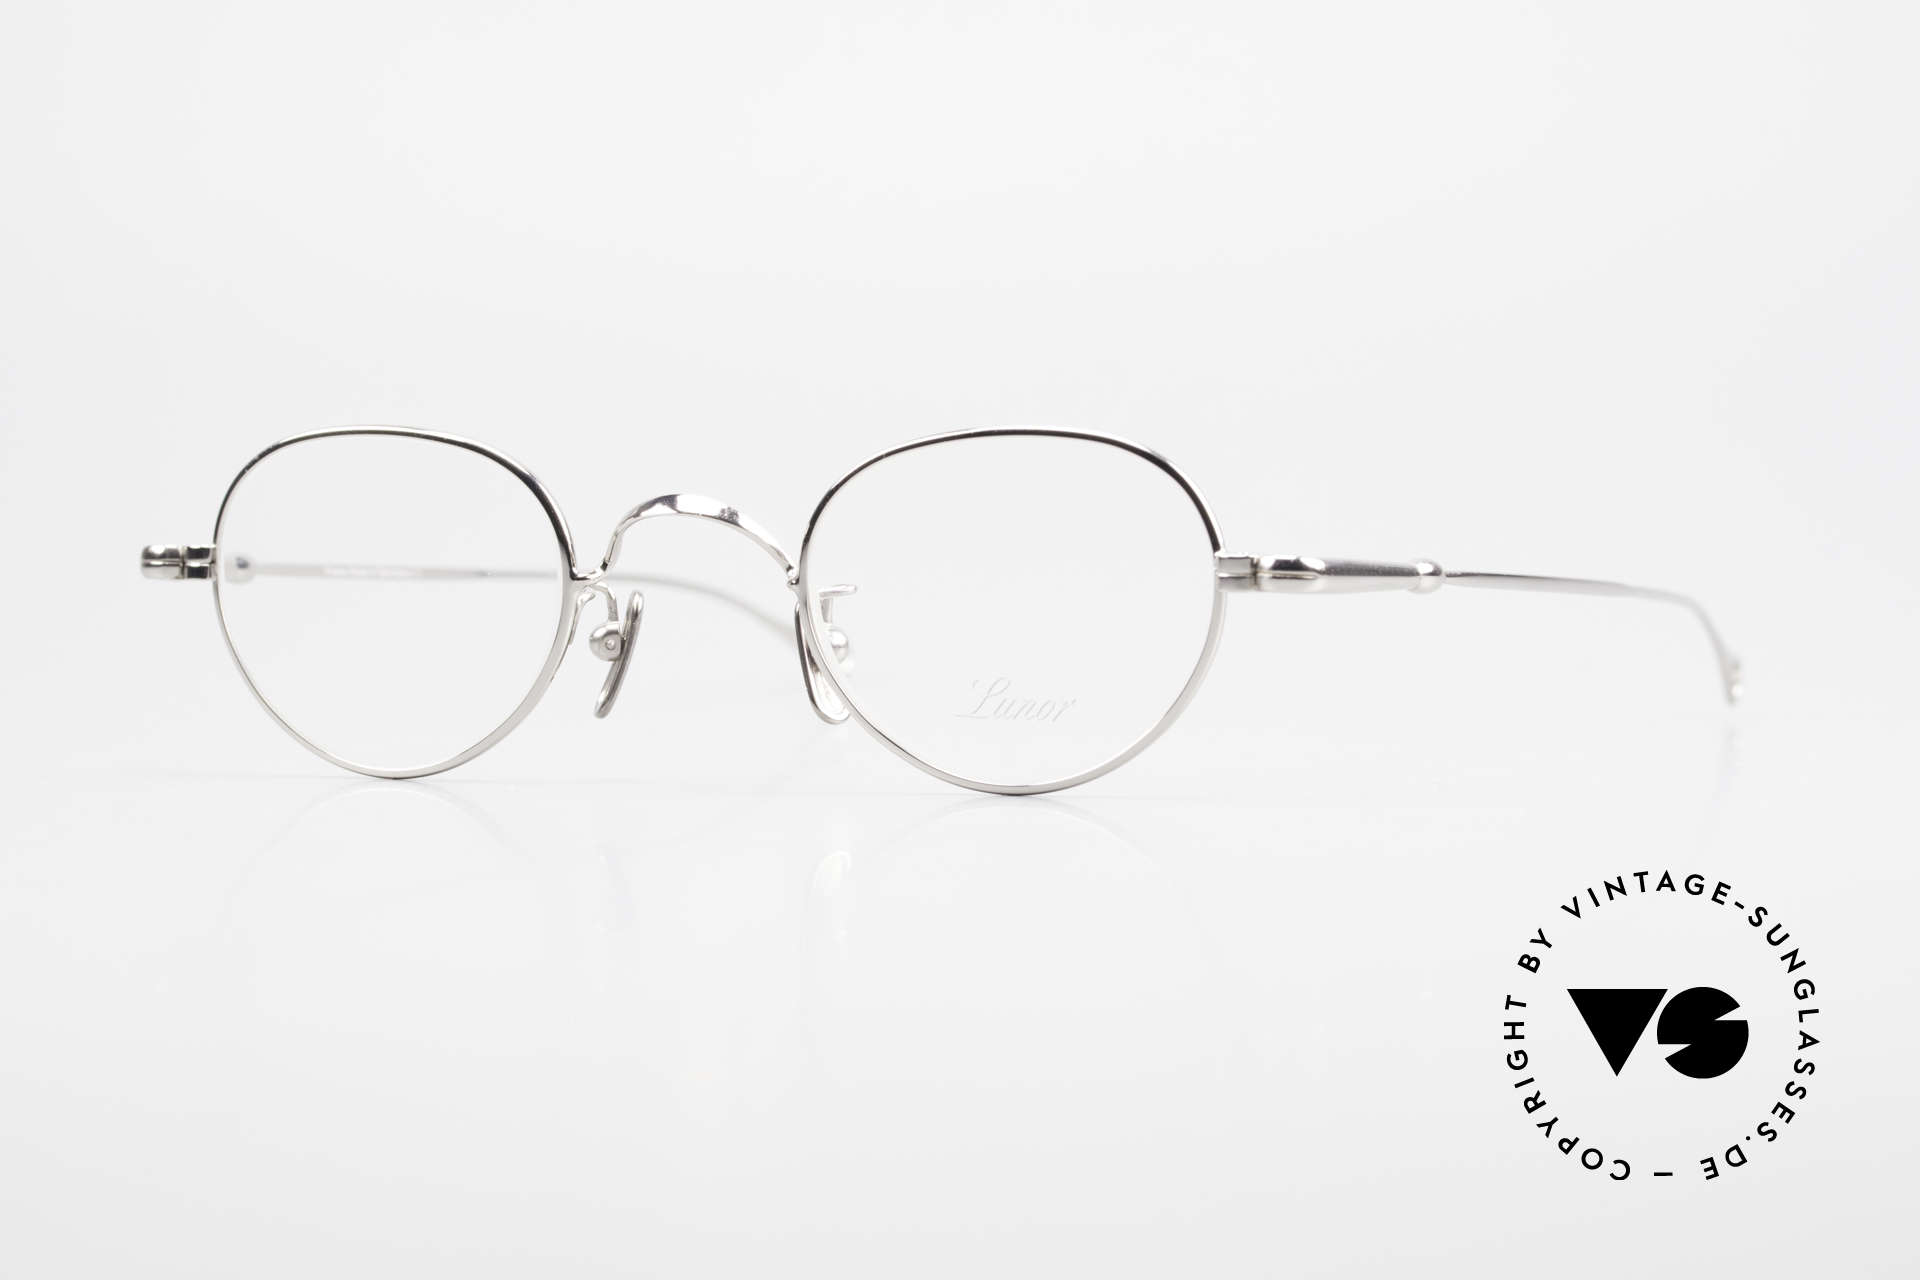 Lunor V 103 Timeless Lunor Eyeglass-Frame, LUNOR: honest craftsmanship with attention to details, Made for Men and Women